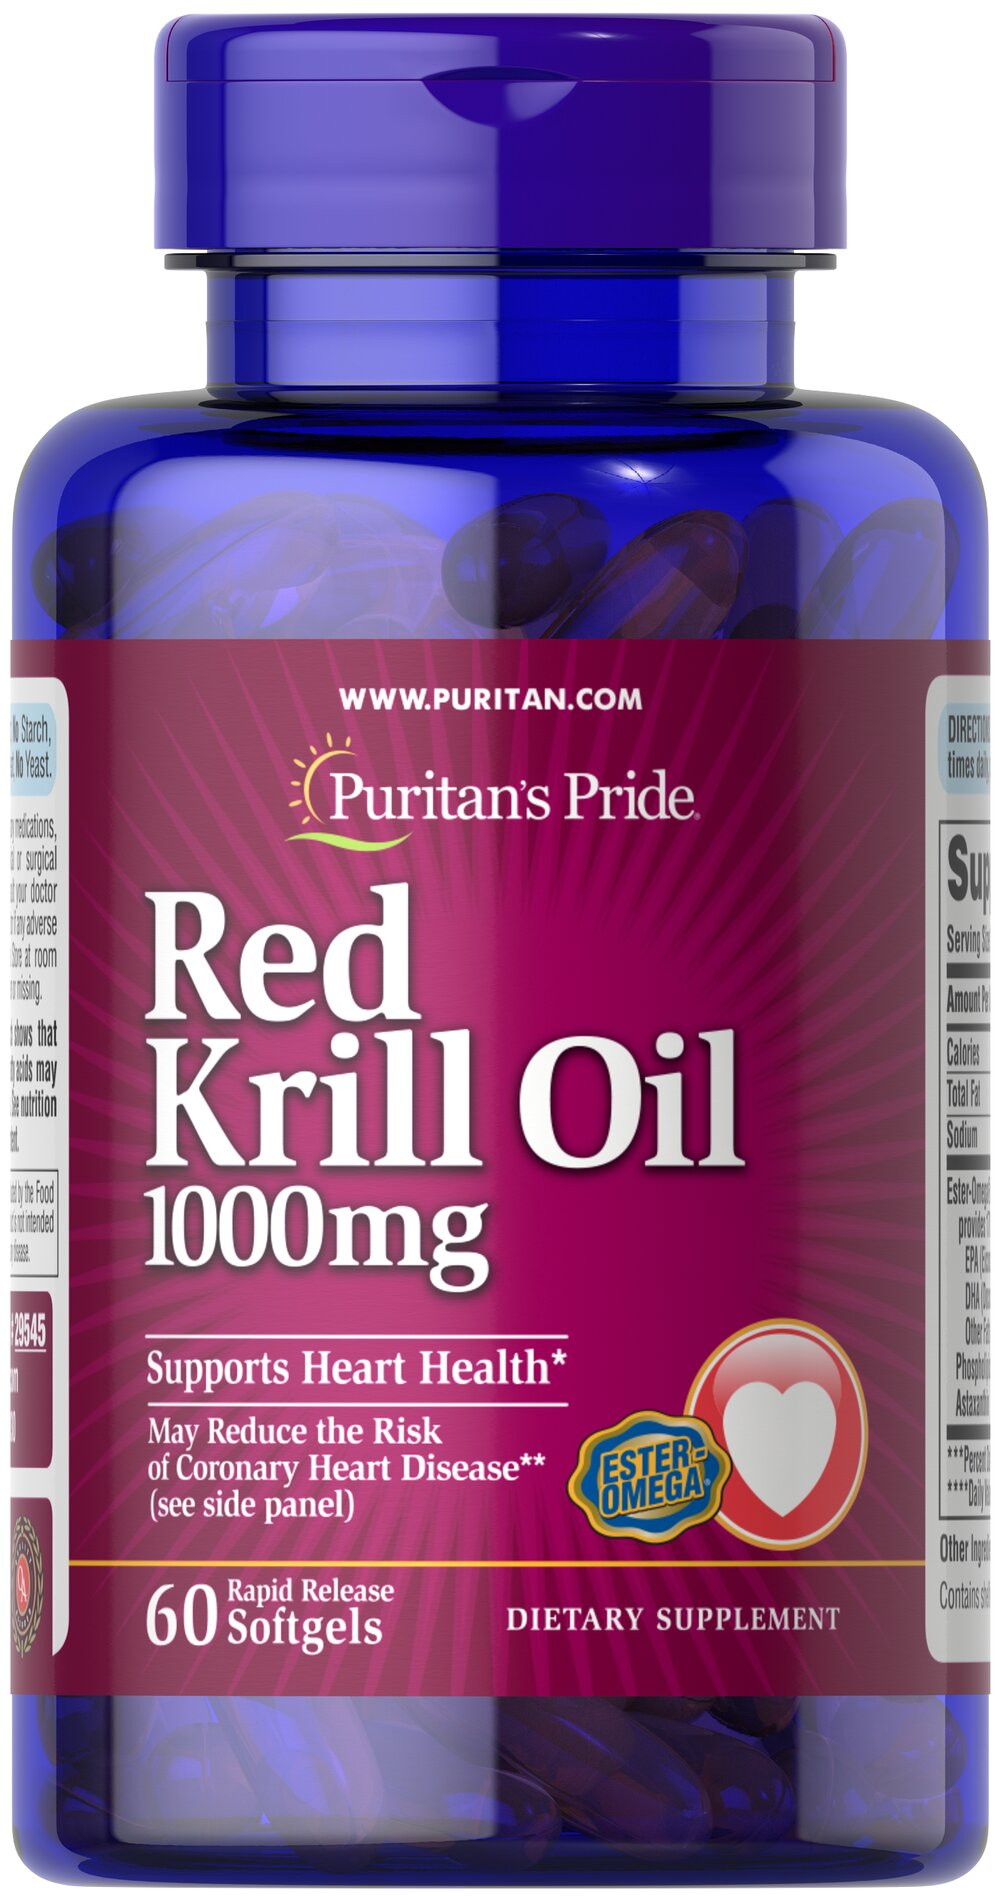 "Red Krill Oil 1000 mg <p><strong>With Naturally Occurring Astaxanthin</strong></p><p>Harvested from the icy waters of Antarctica.</p><p>May reduce the risk of coronary heart disease◊</p><p>Supports a healthy heart**</p><p>Provides you with Omega-3 fatty acids — the ""good"" fats important for cellular and metabolic health**</p><p>Rapid release softgels facilitate quick absorption</p> 60 Softgels 1000 mg $49.99"